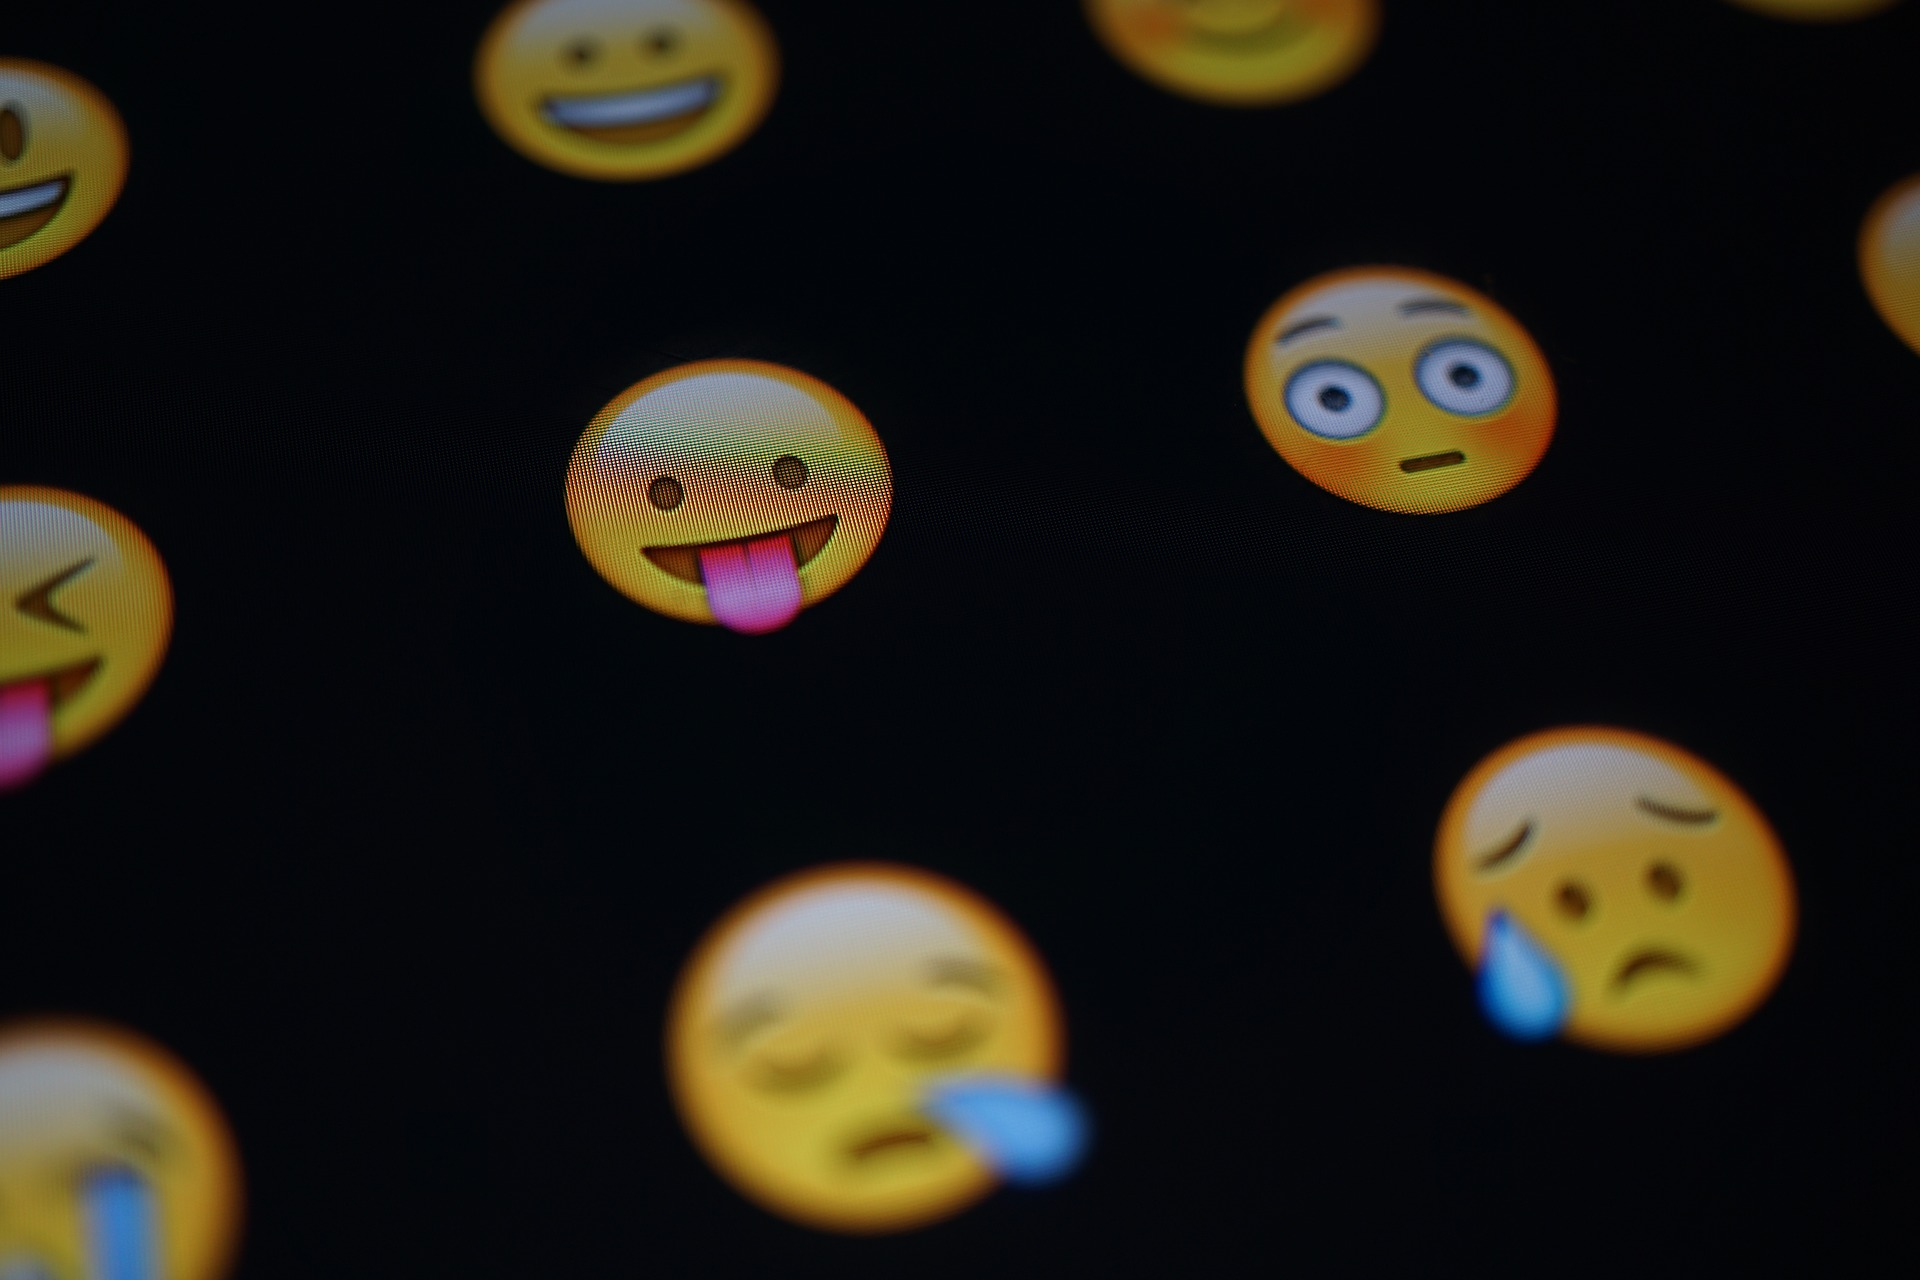 Impress Your Friends With These 9 Emoji Meanings